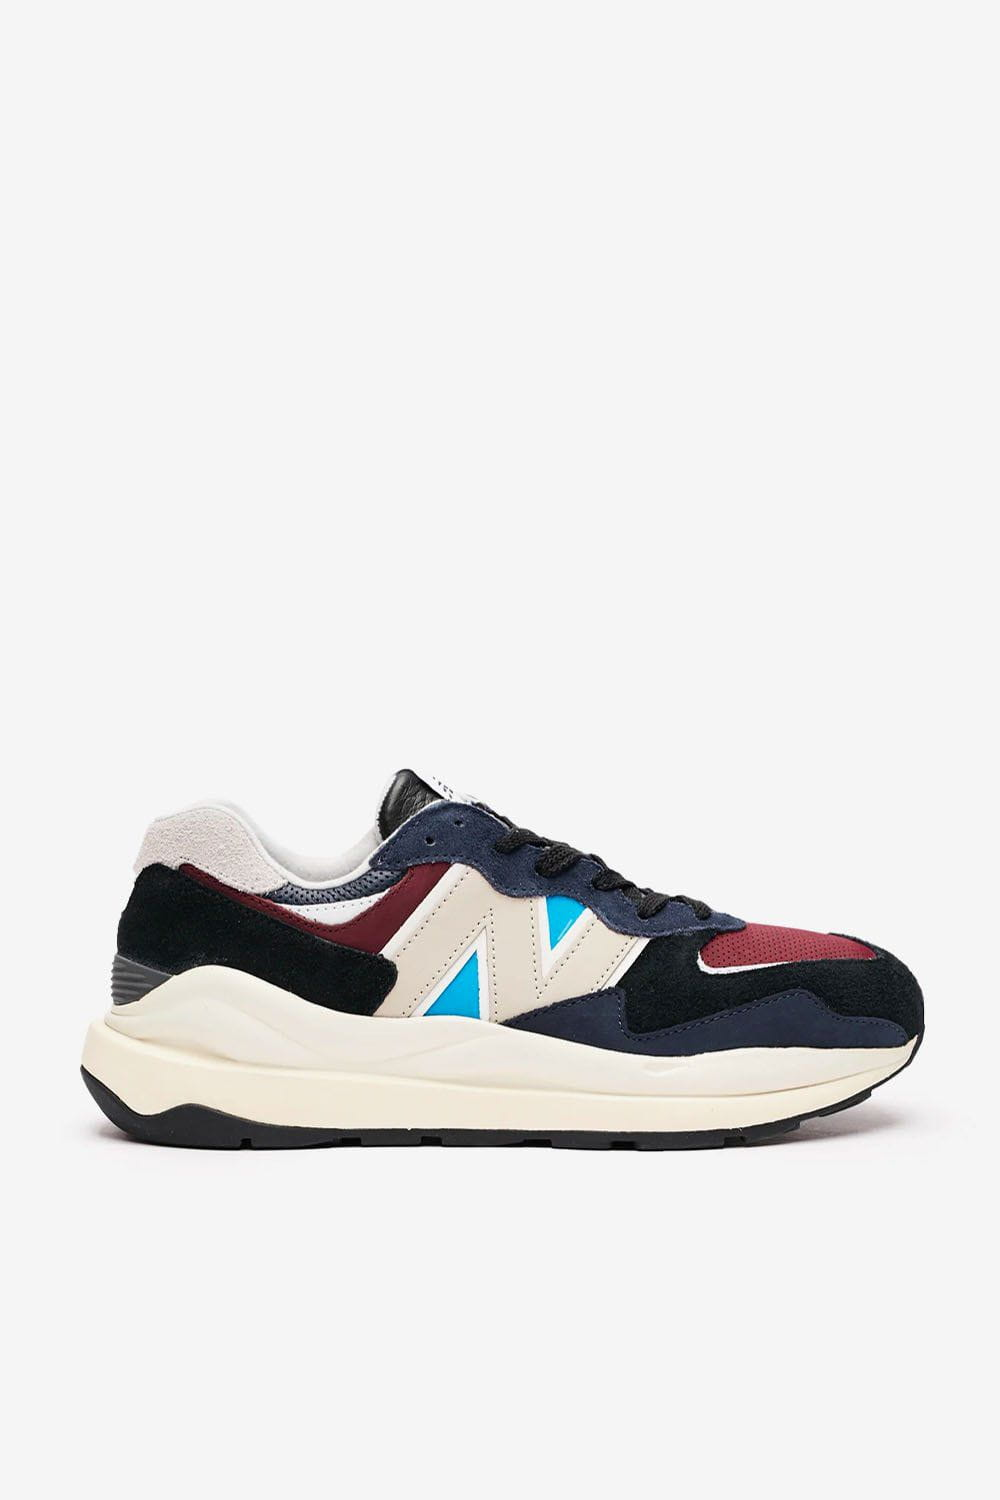 New Balance Footwear 57/40 Navy Burgundy